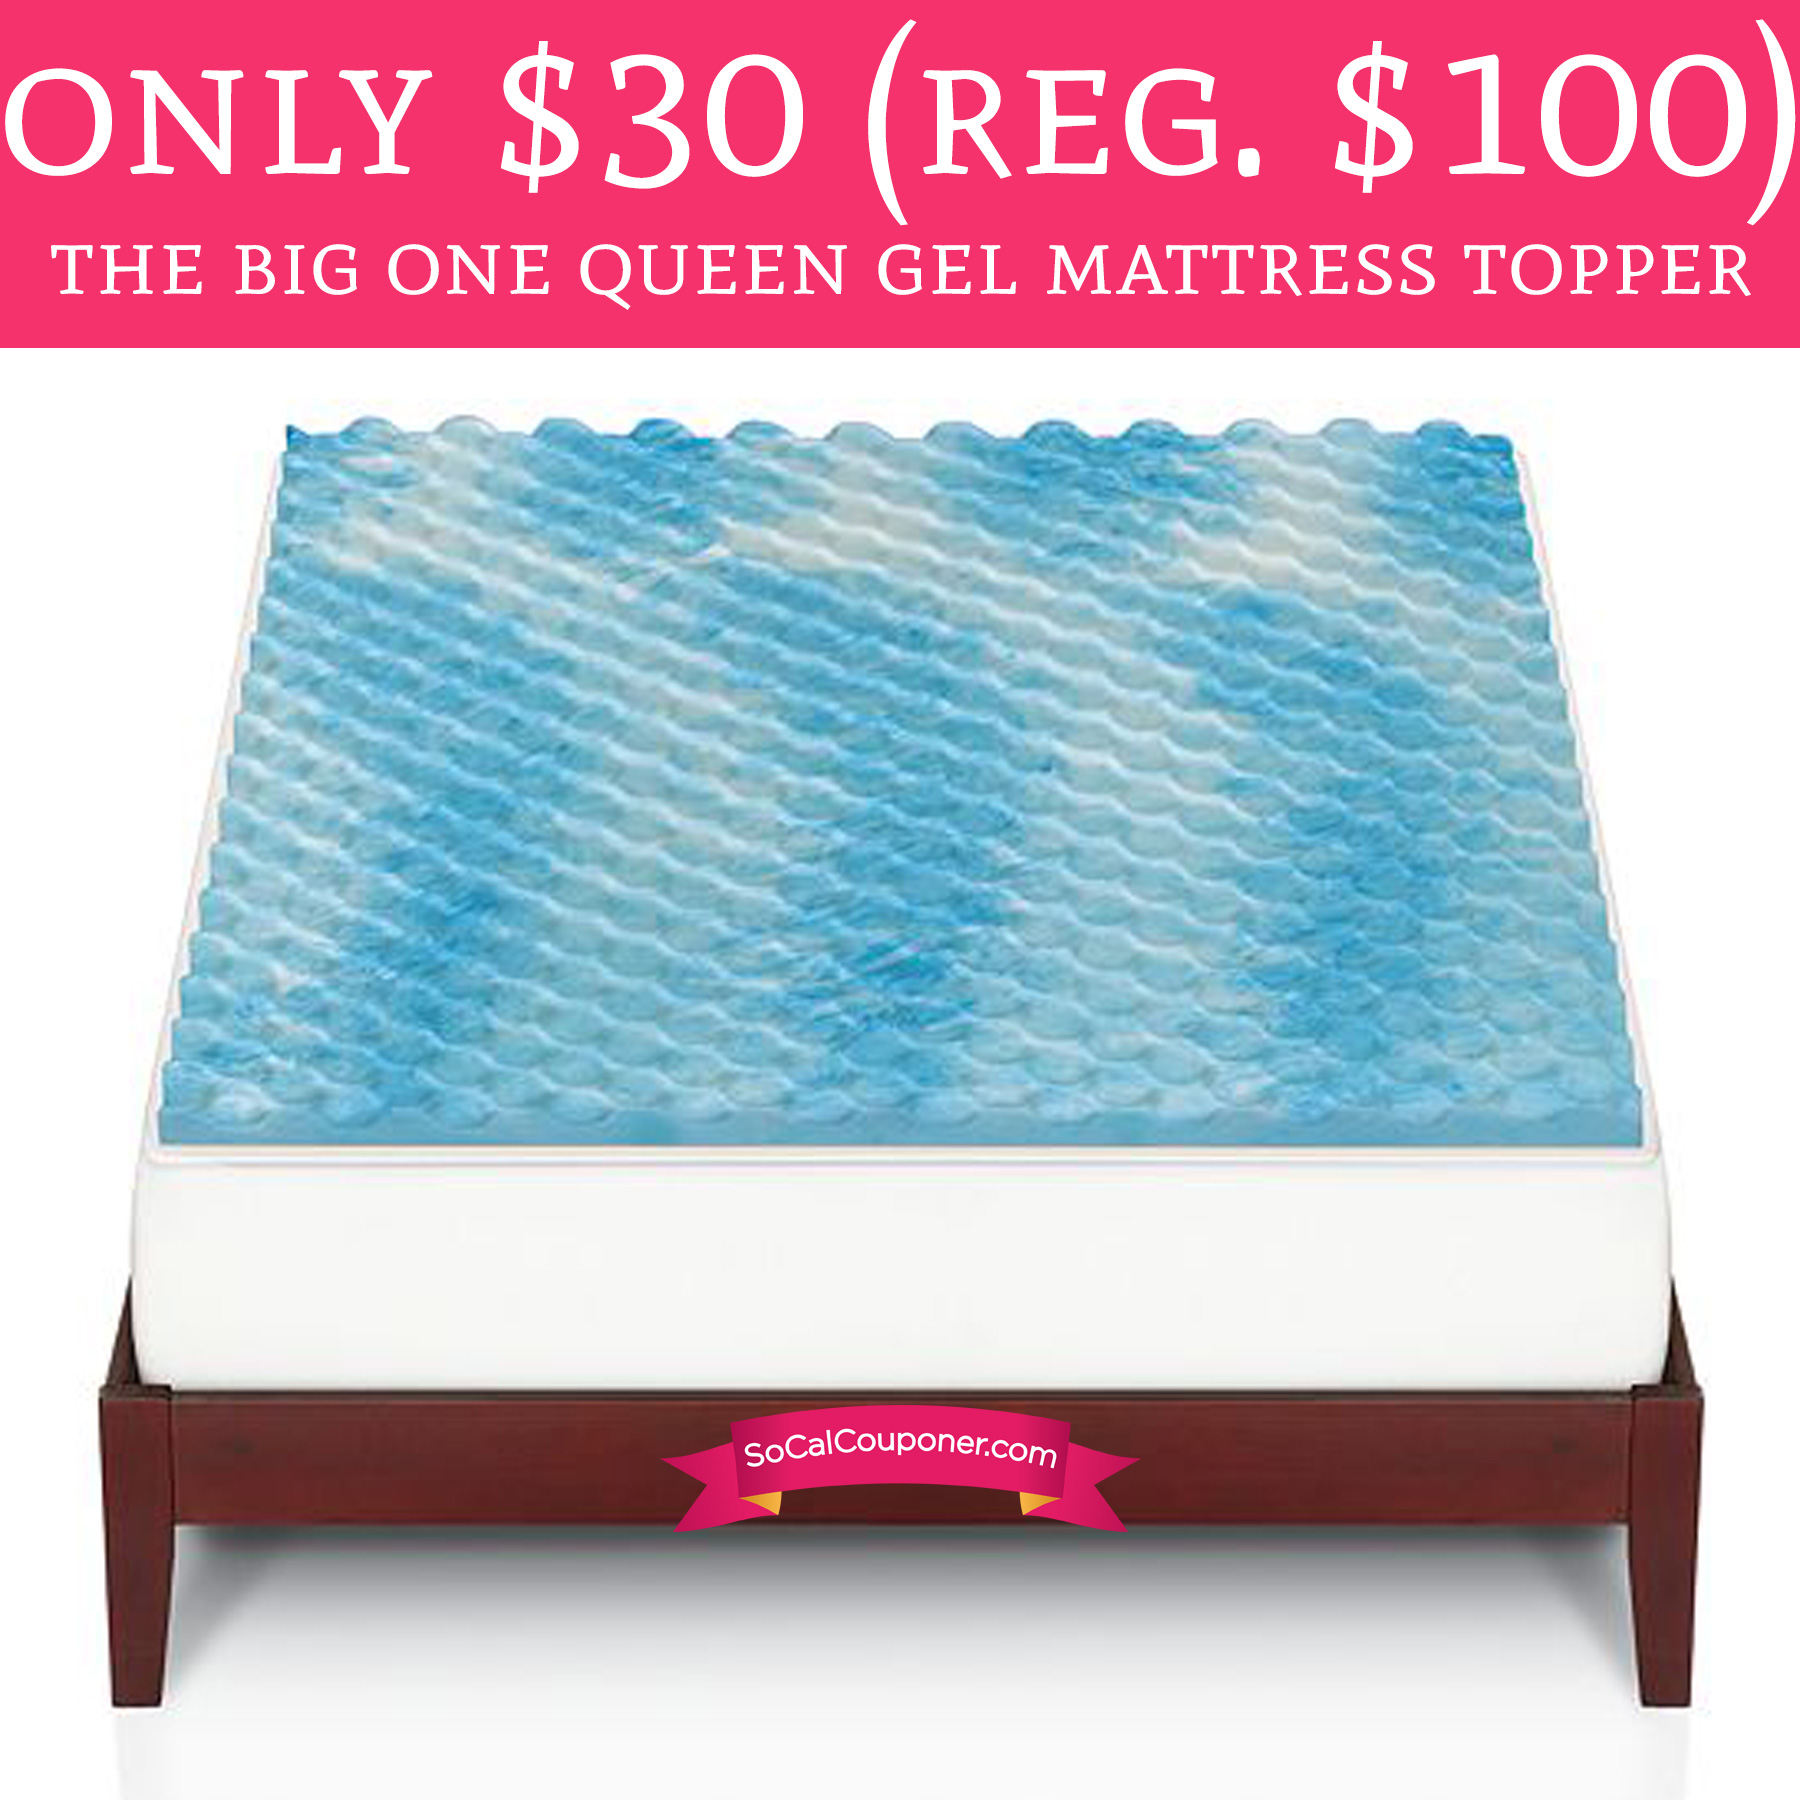 Only 30 Regular 100 The Big One Queen Gel Mattress Topper Deal Hunting Babe